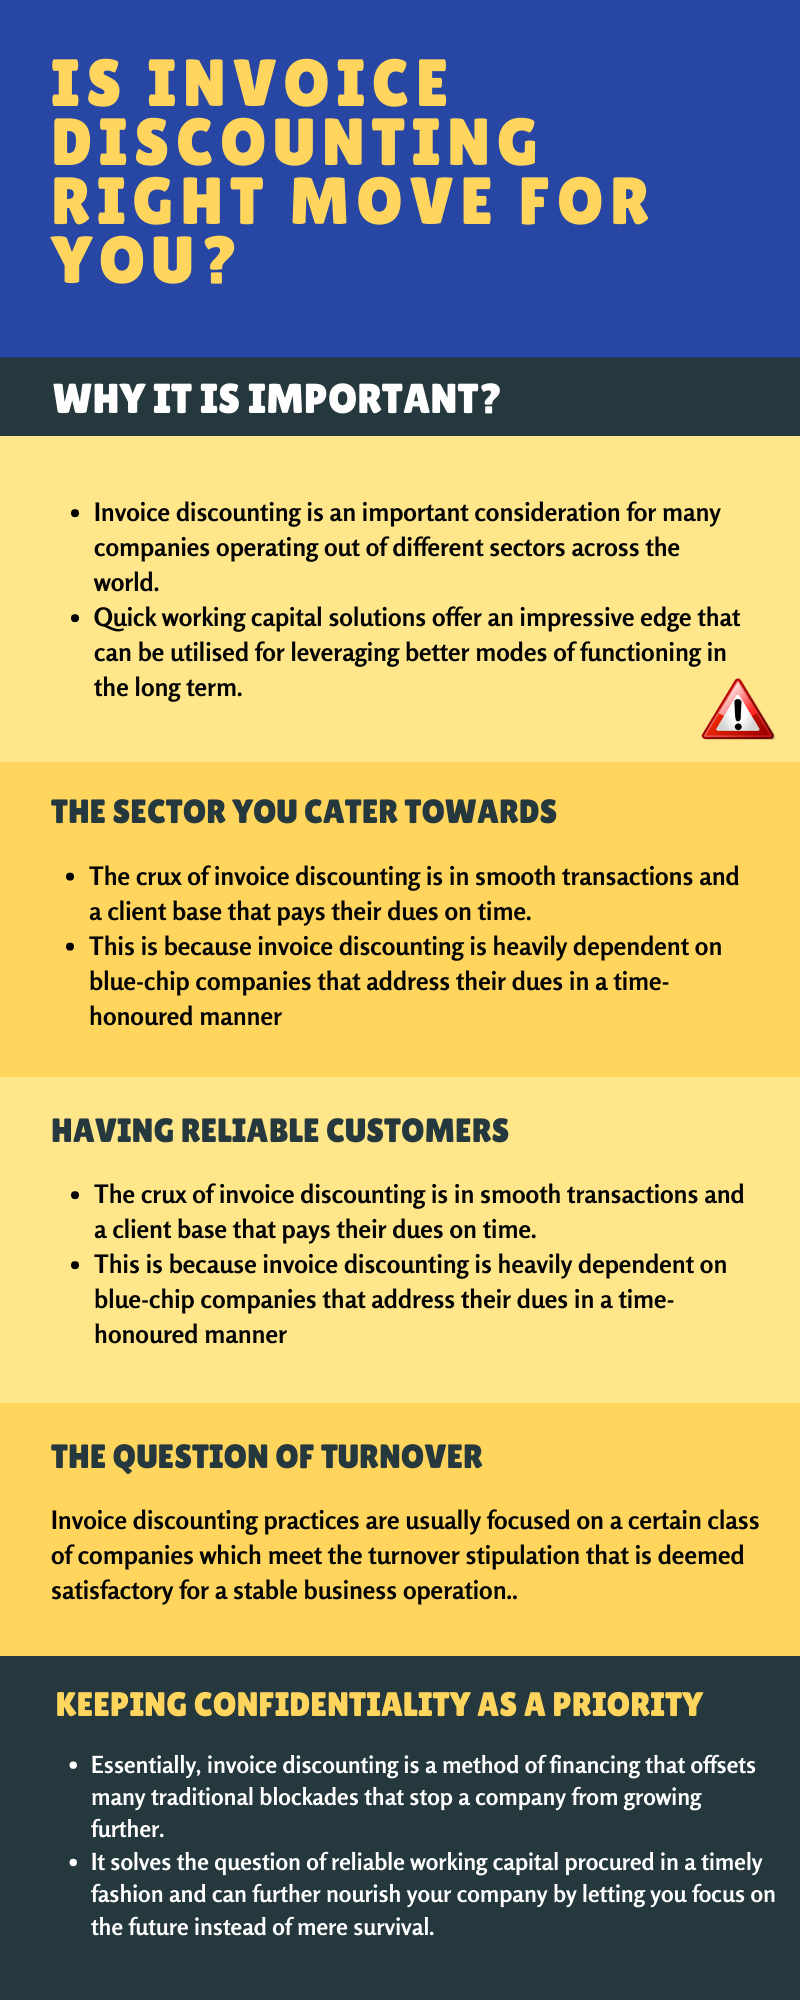 Is invoice discounting right move for you? #infographic #Finance #infographics